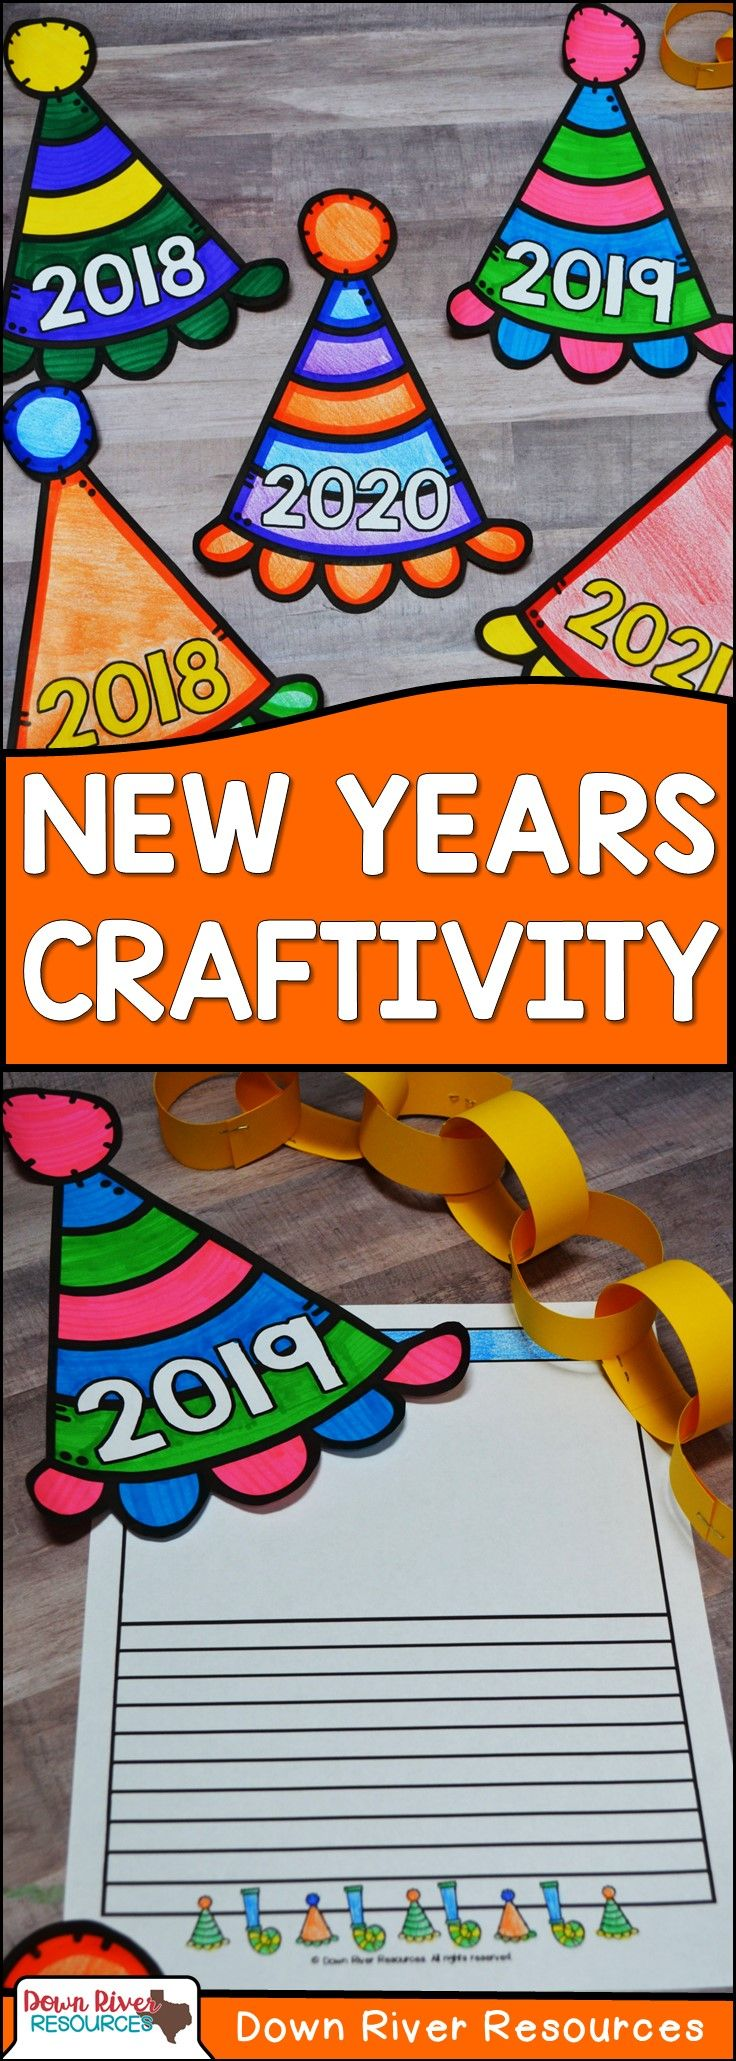 New Years Crafts for Kids | New Years Crafts | New Years Writing Prompts | New Years Writing Activities | New Years Writing Kindergarten | New Years Writing First Grade | New Years Writing Second Grade | New Years Writing Third Grade | New Years Writing Fourth Grade | New Years Writing Fifth Grade | New Years Bulletin Boards